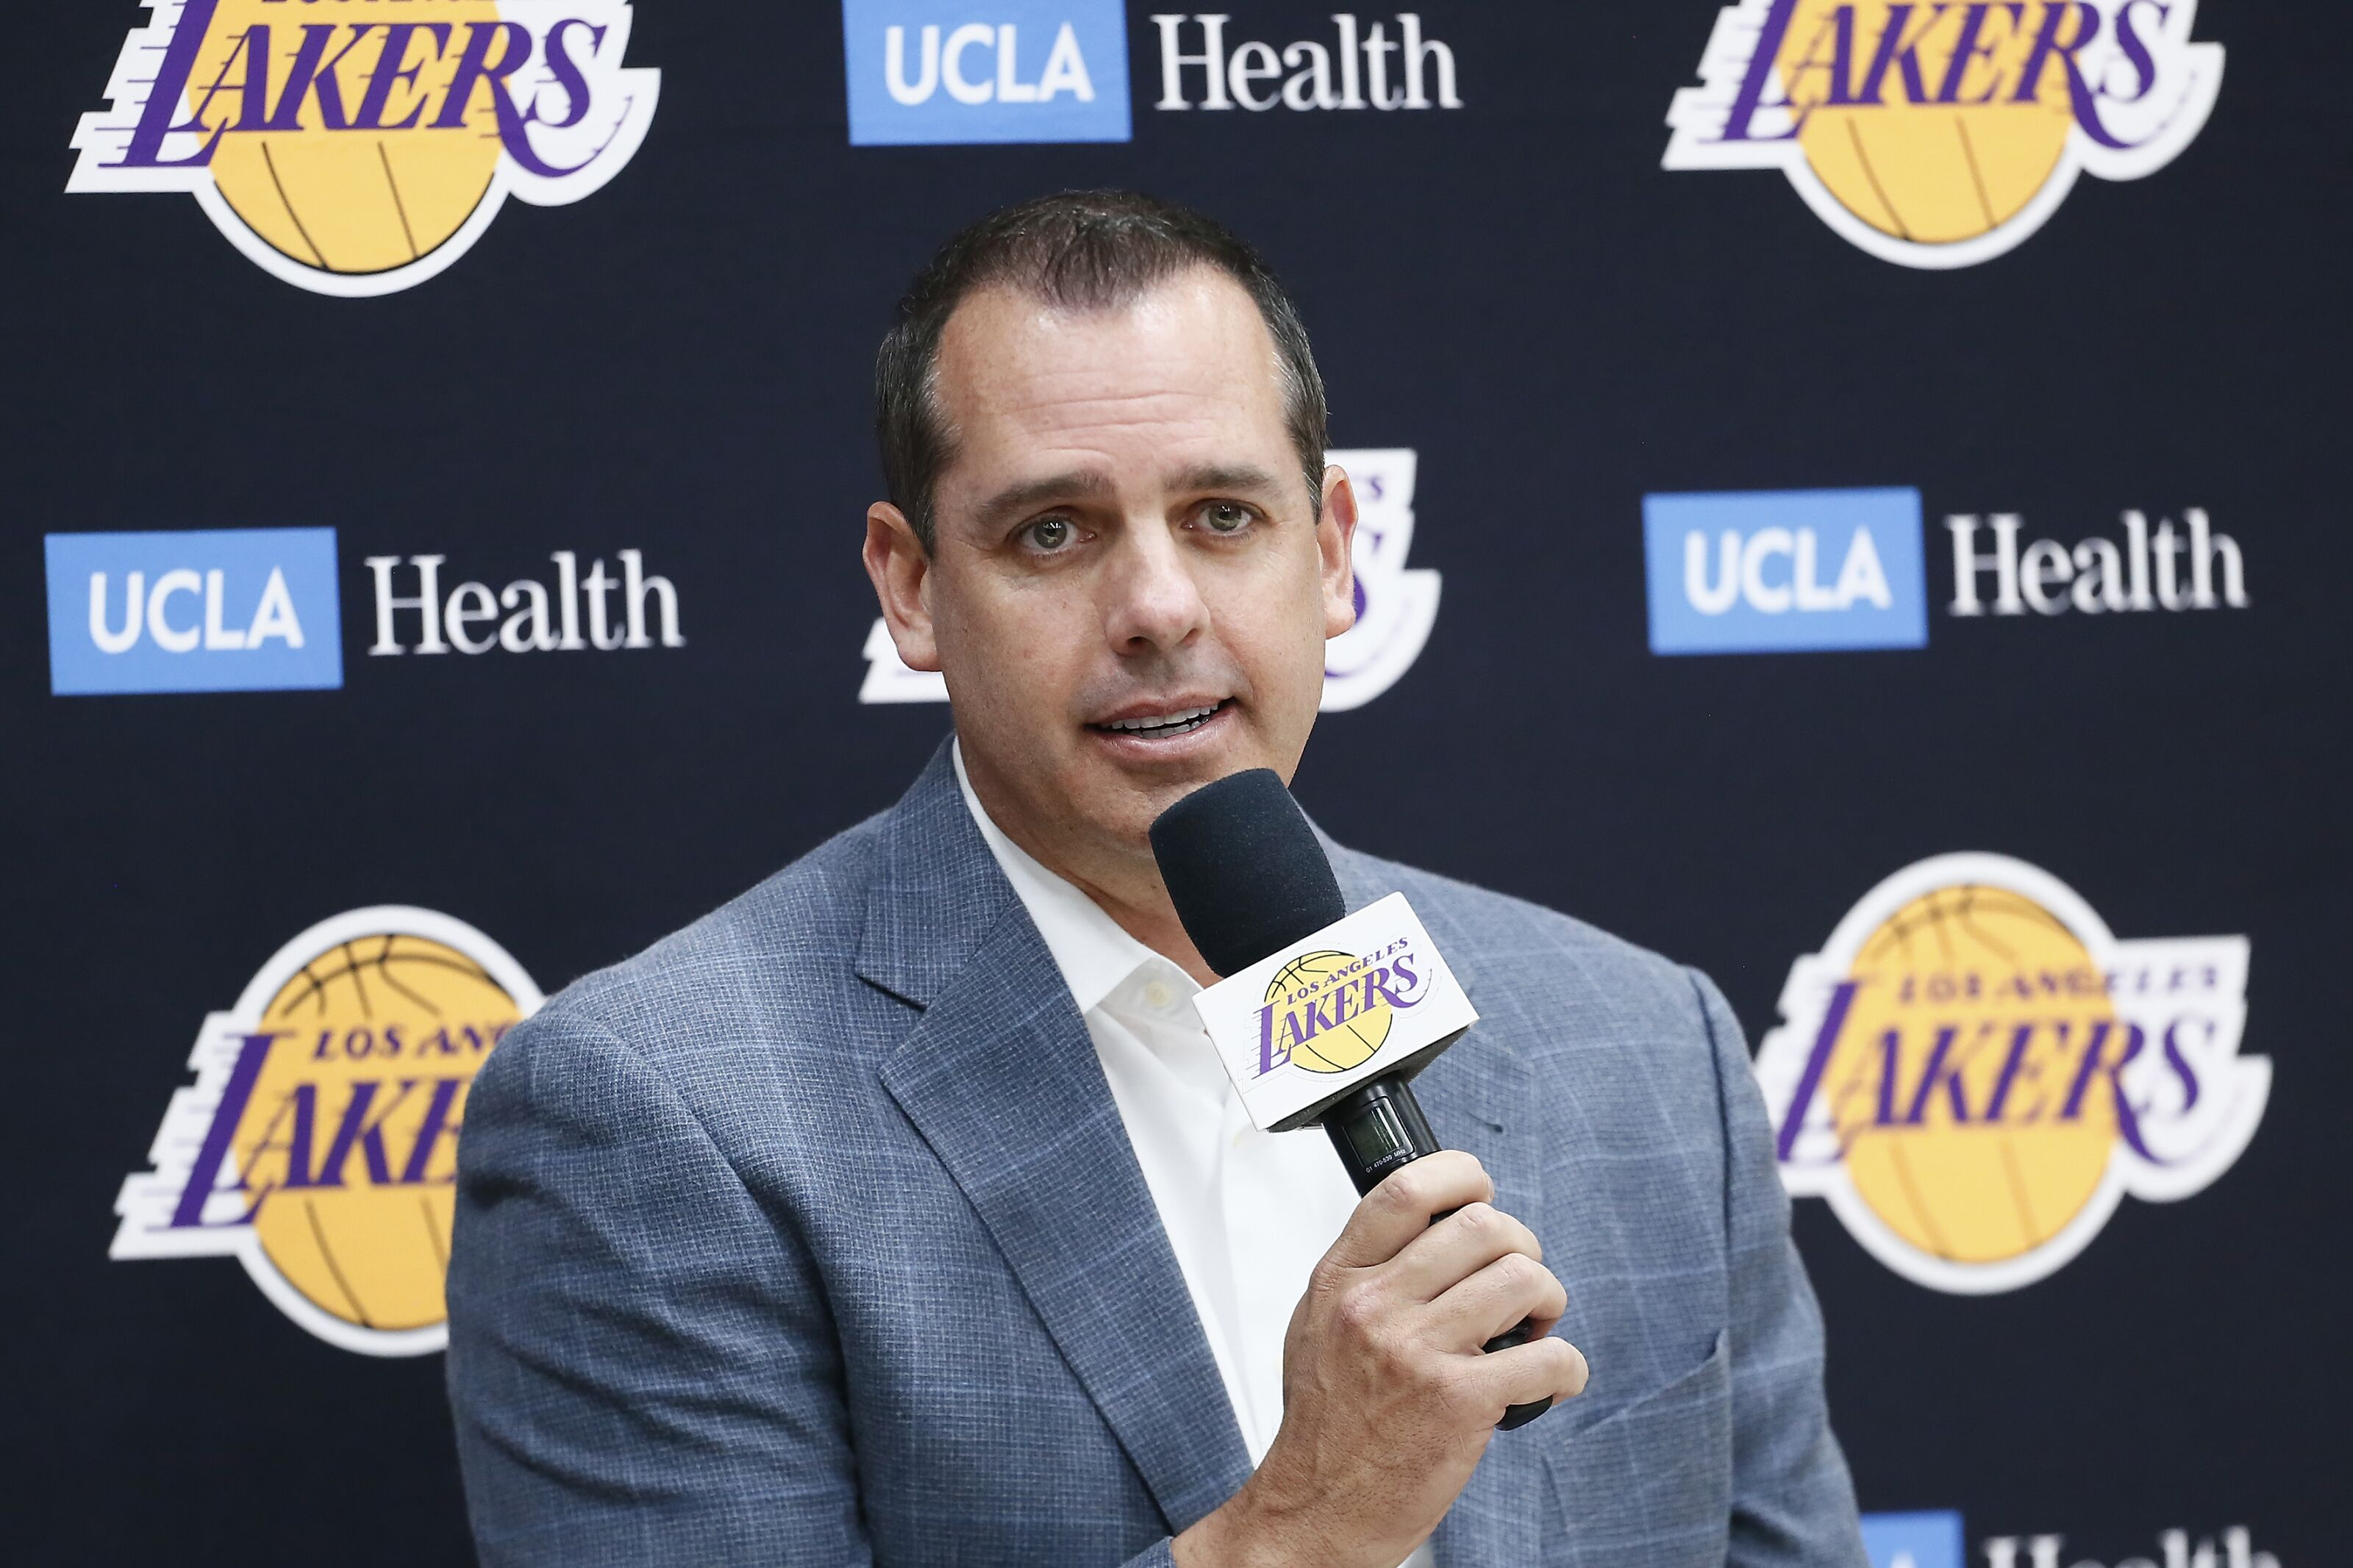 Los Angeles Lakers: Frank Vogel knows to not count out Golden State Warriors